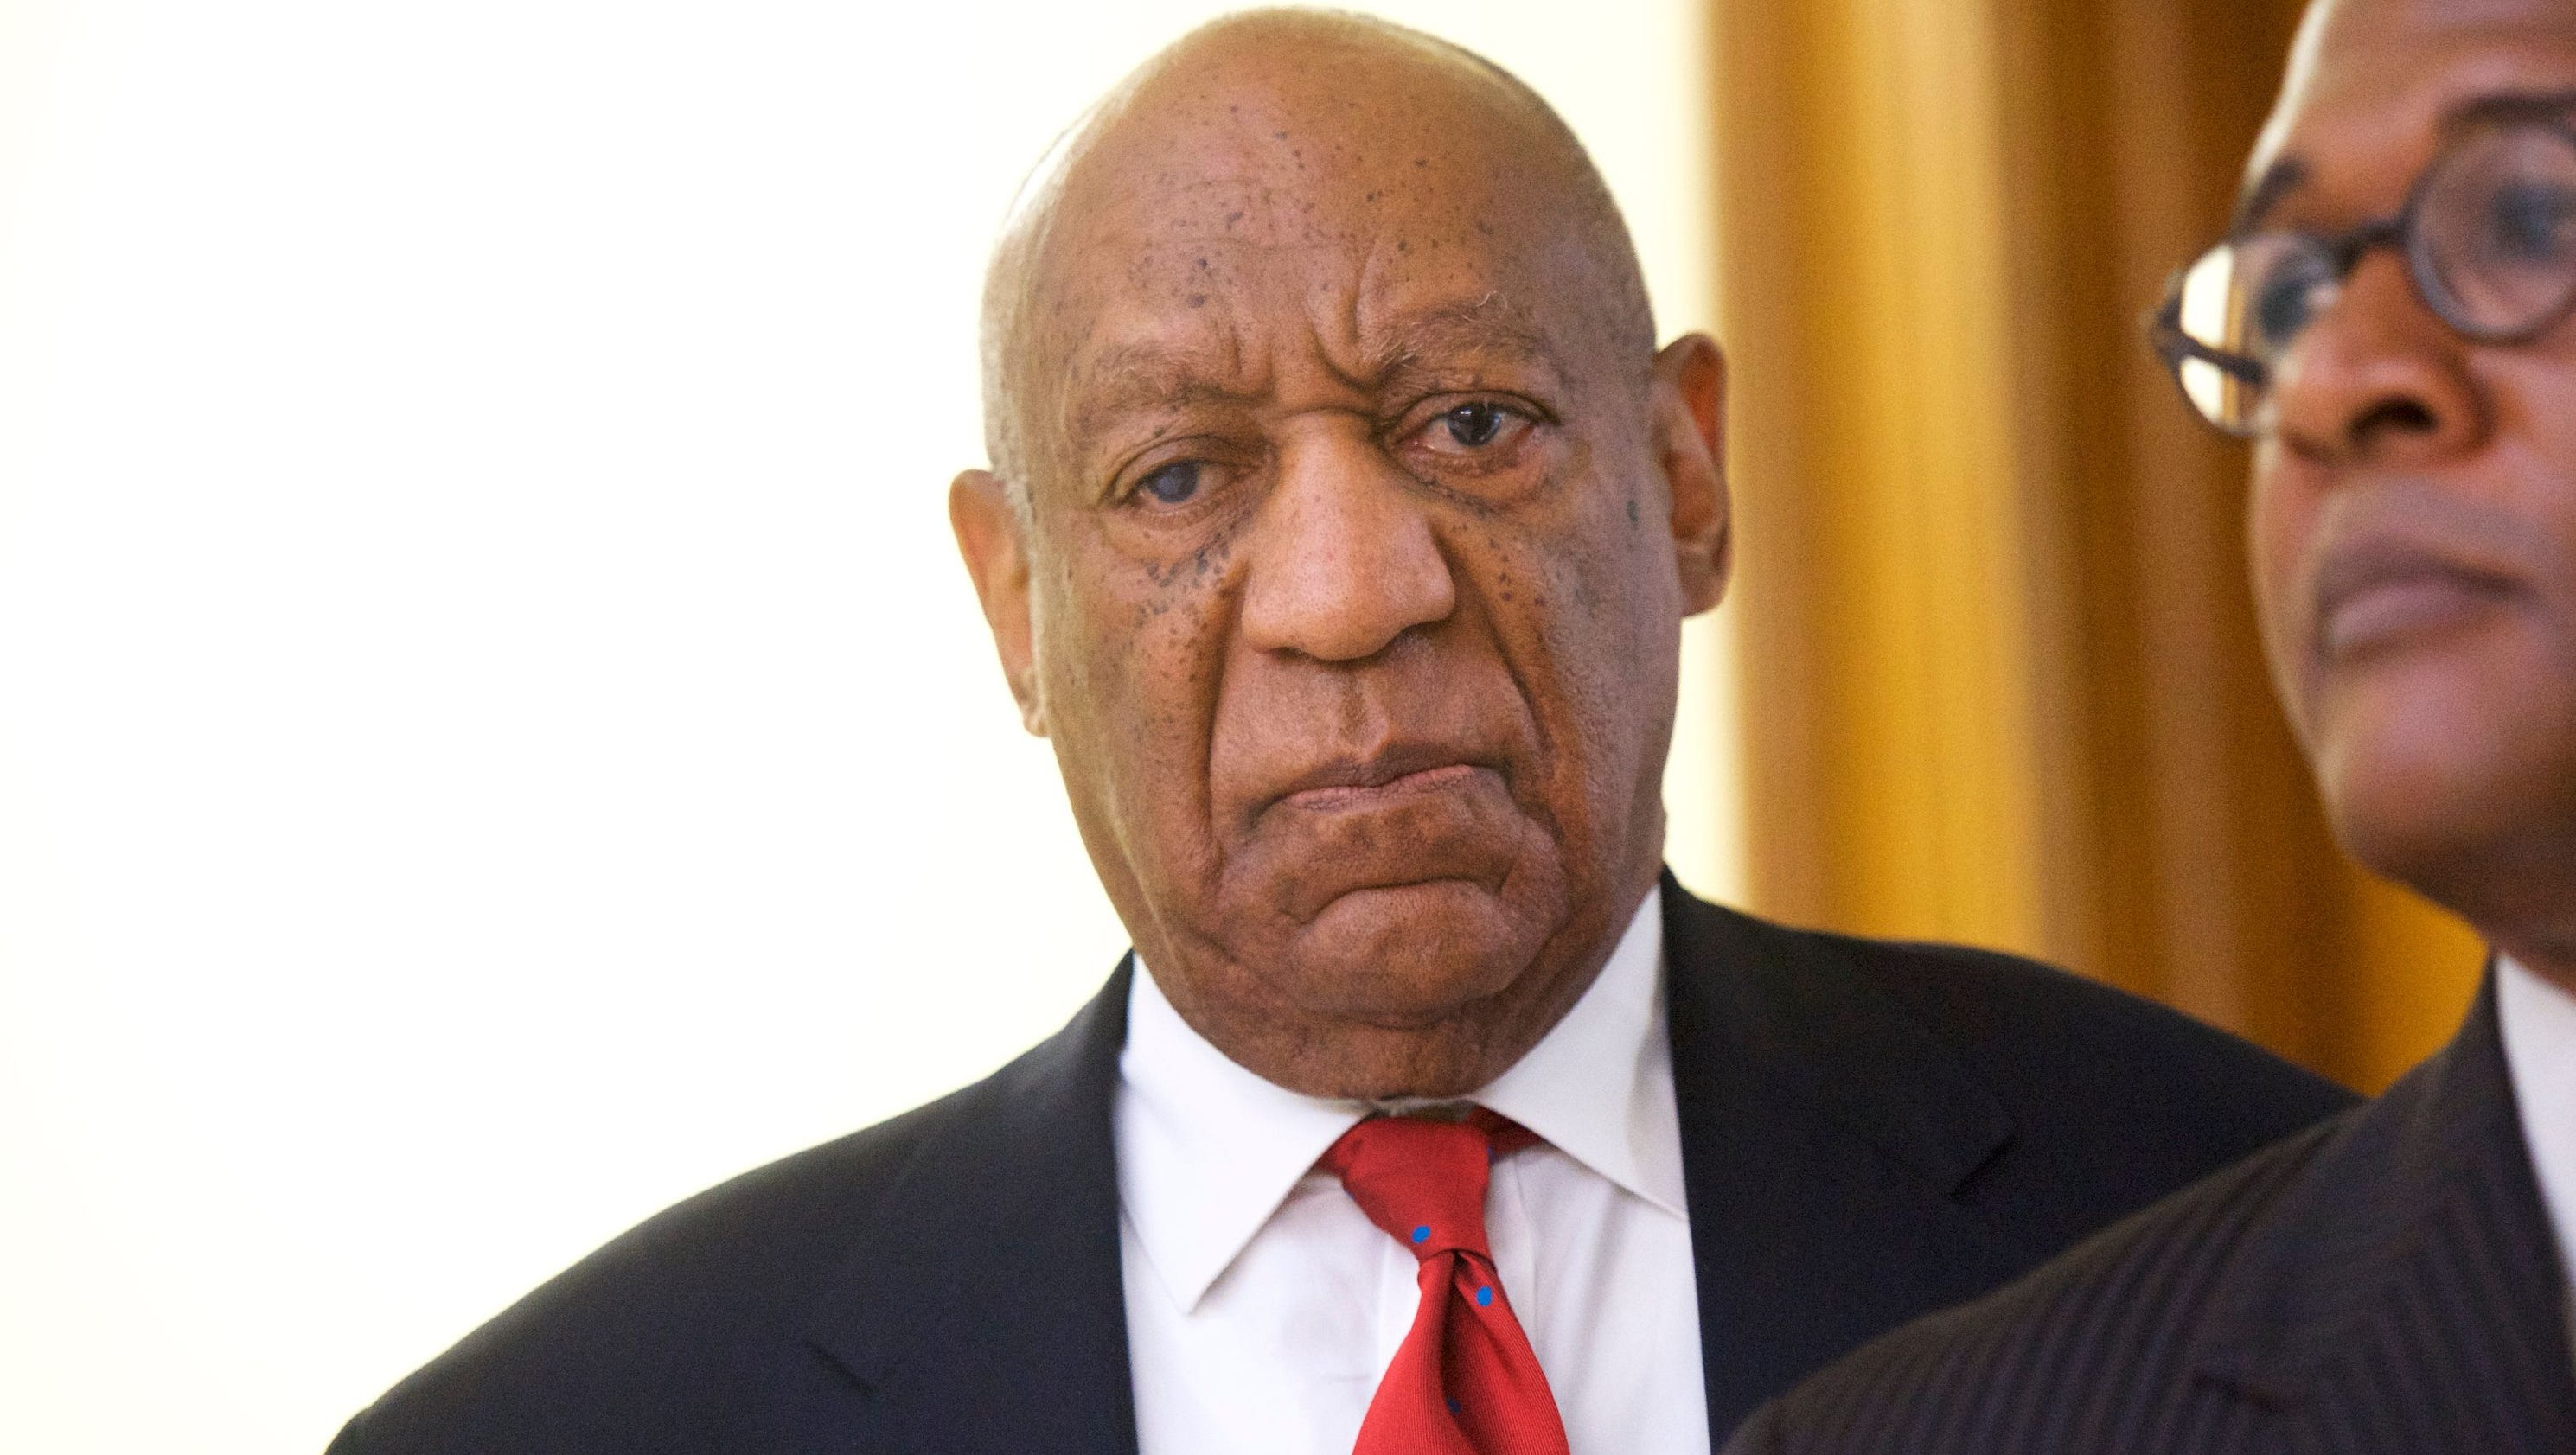 Bill Cosby Found Guilty On All 3 Counts Of Indecent